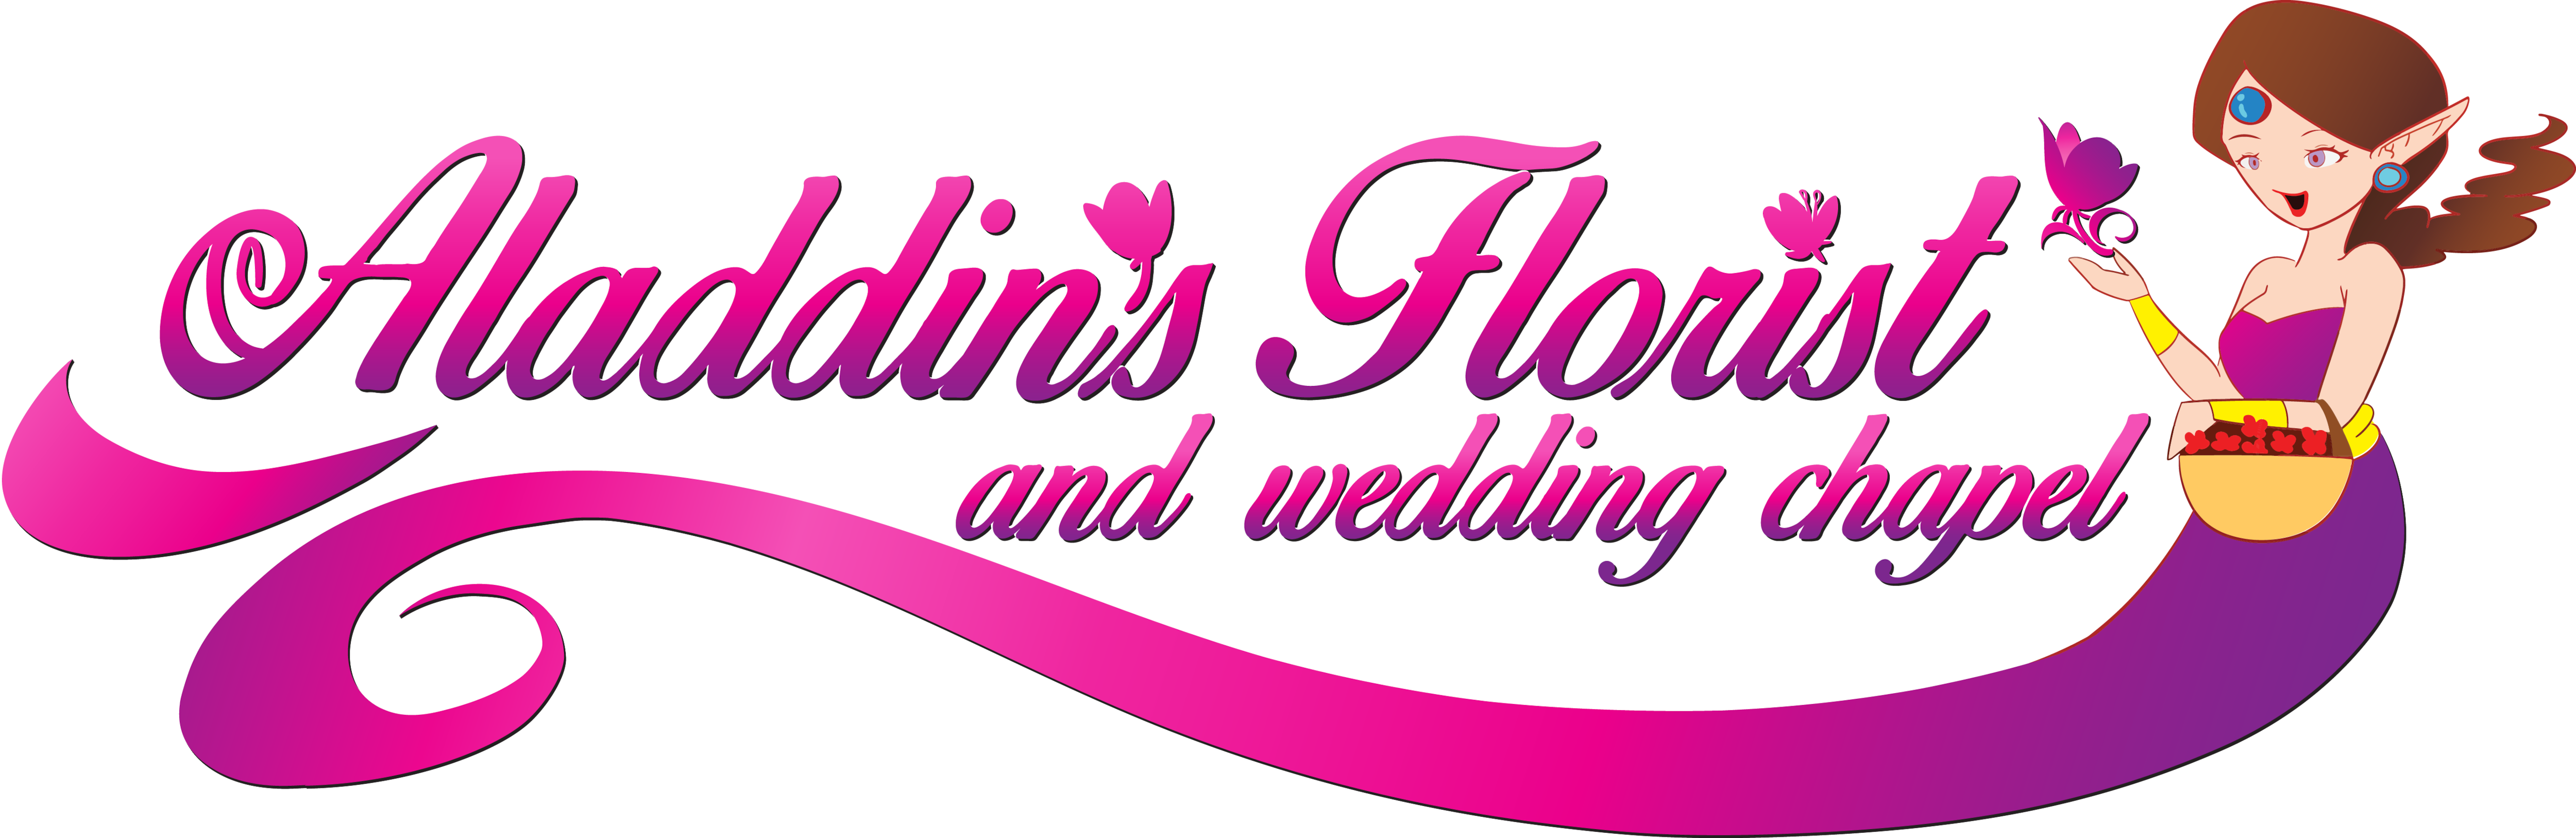 Buy Sympathy And Funeral Flowers From Aladdins Florist Wedding Chapel